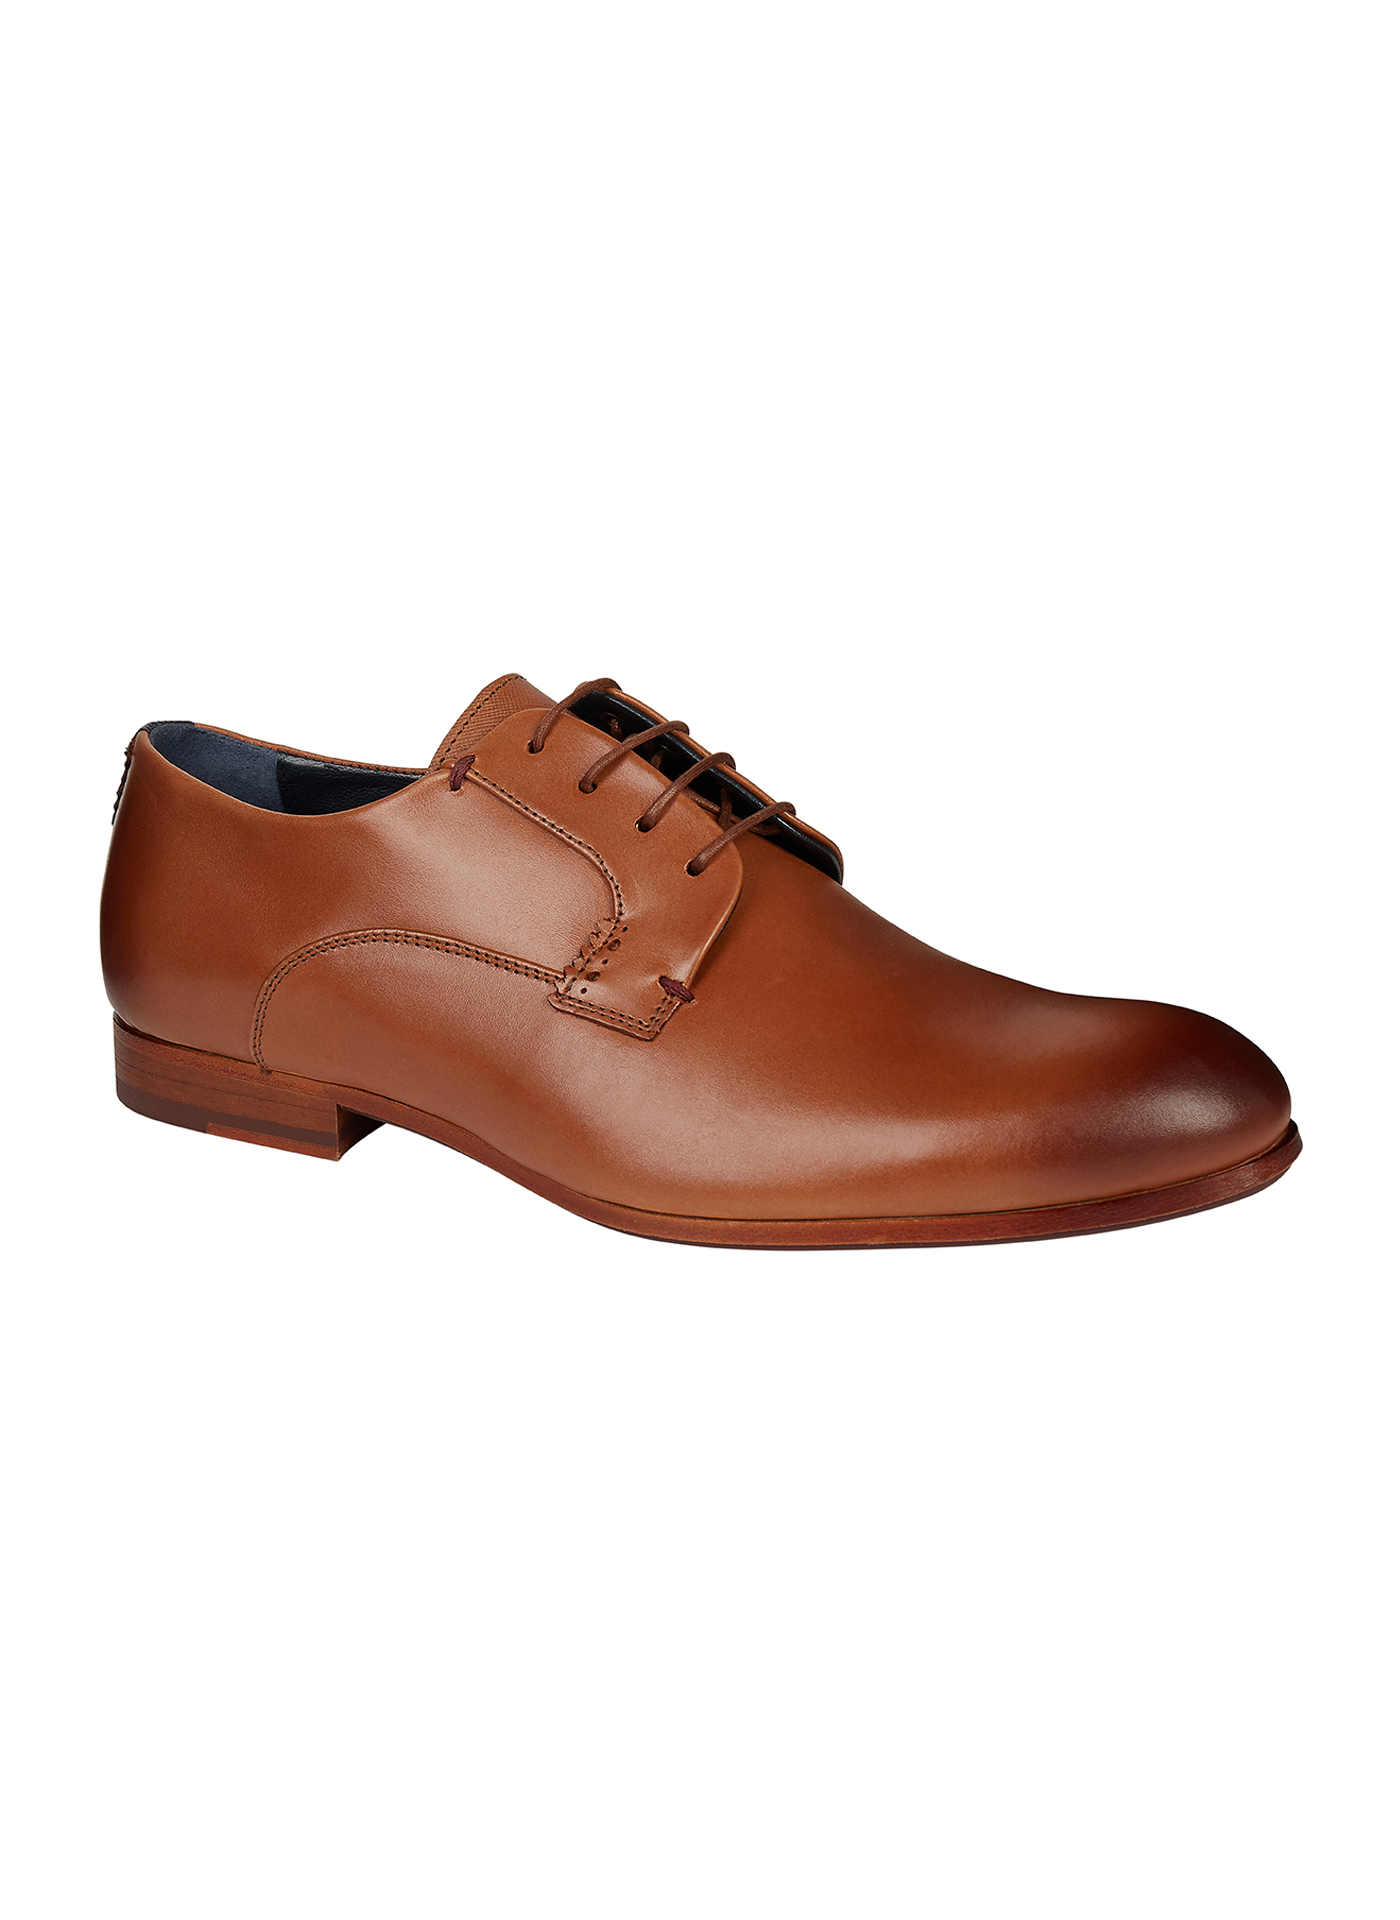 Ted Baker brown leather shoes for men